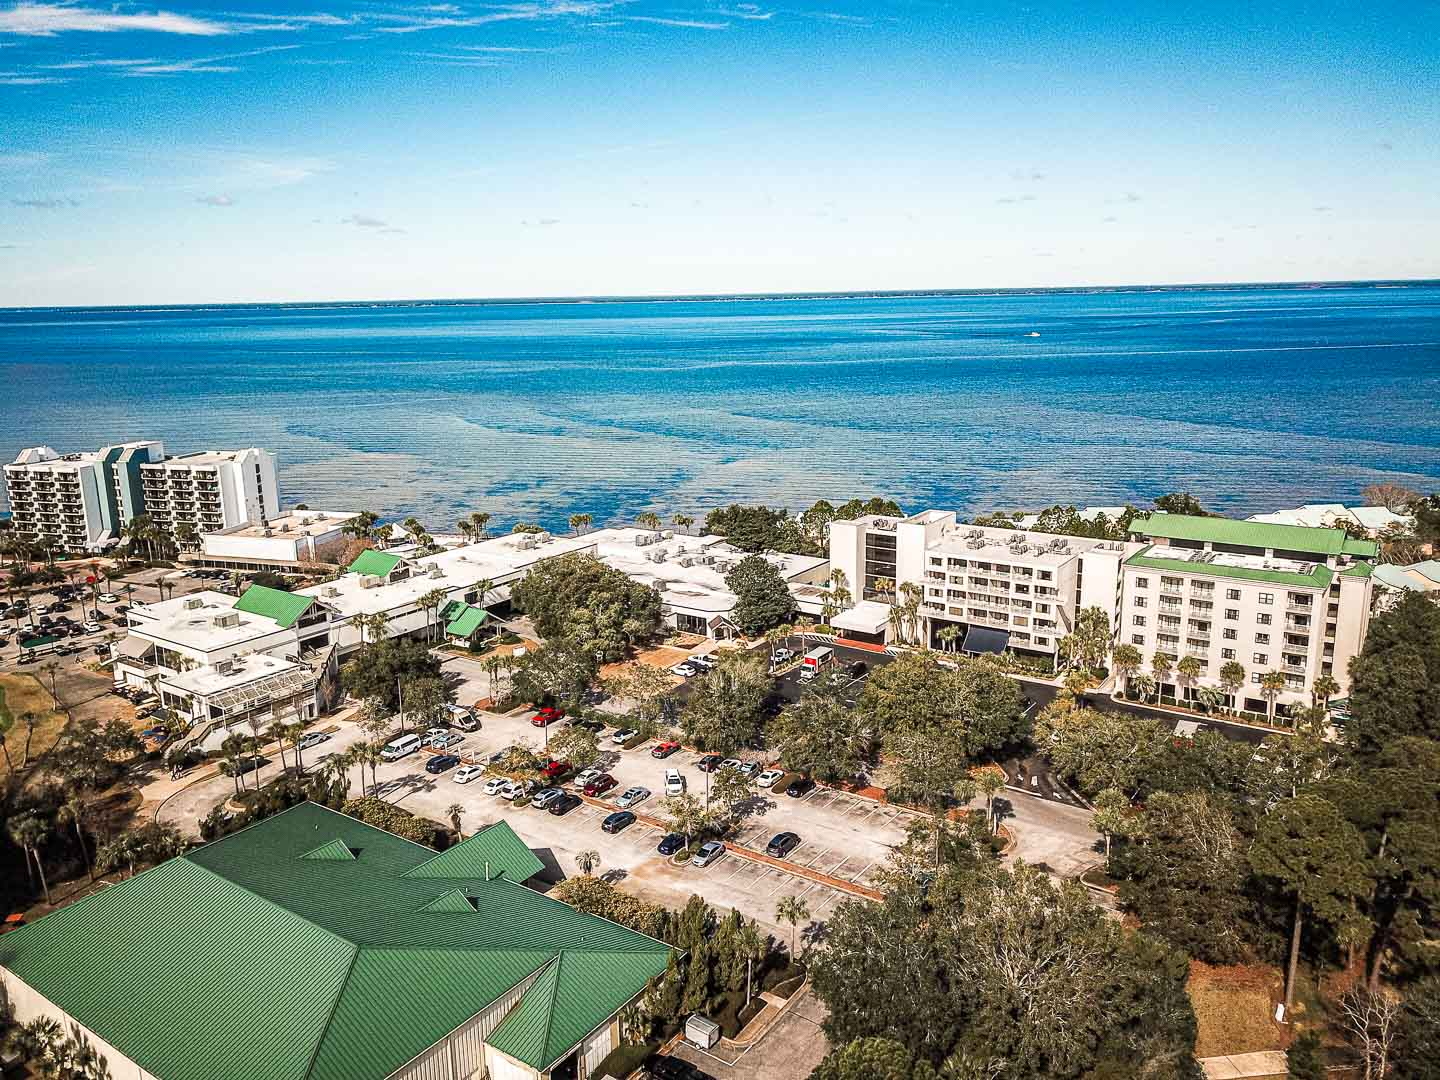 An expansive view of VRI's Bay Club of Sandestin in Florida.